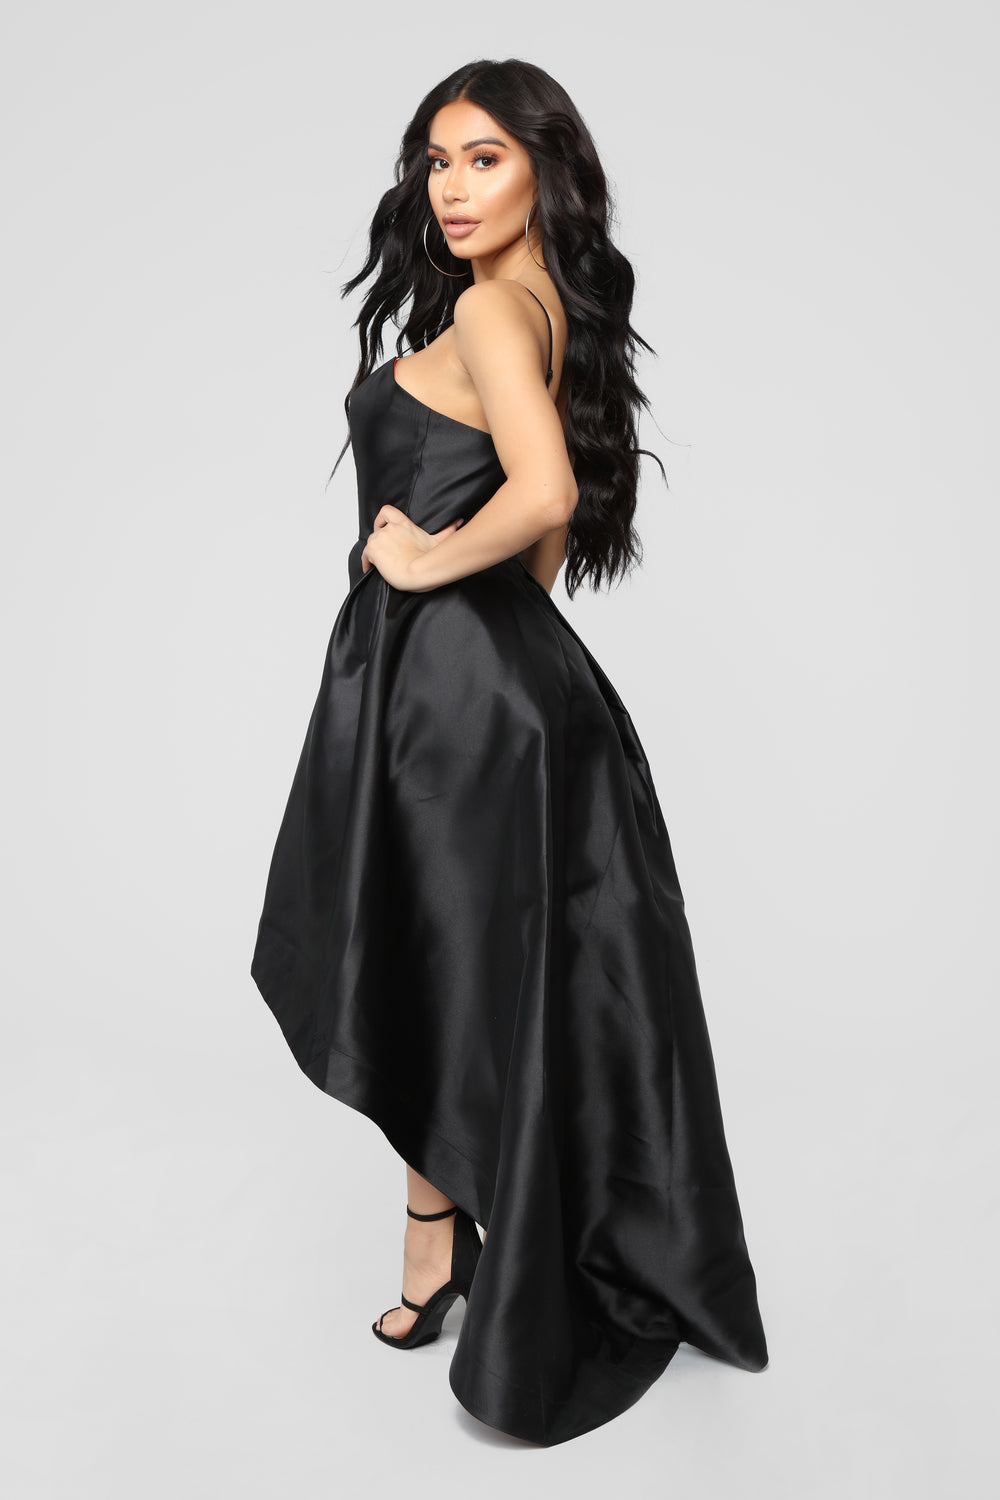 High Hopes High Low Dress - Black/Red